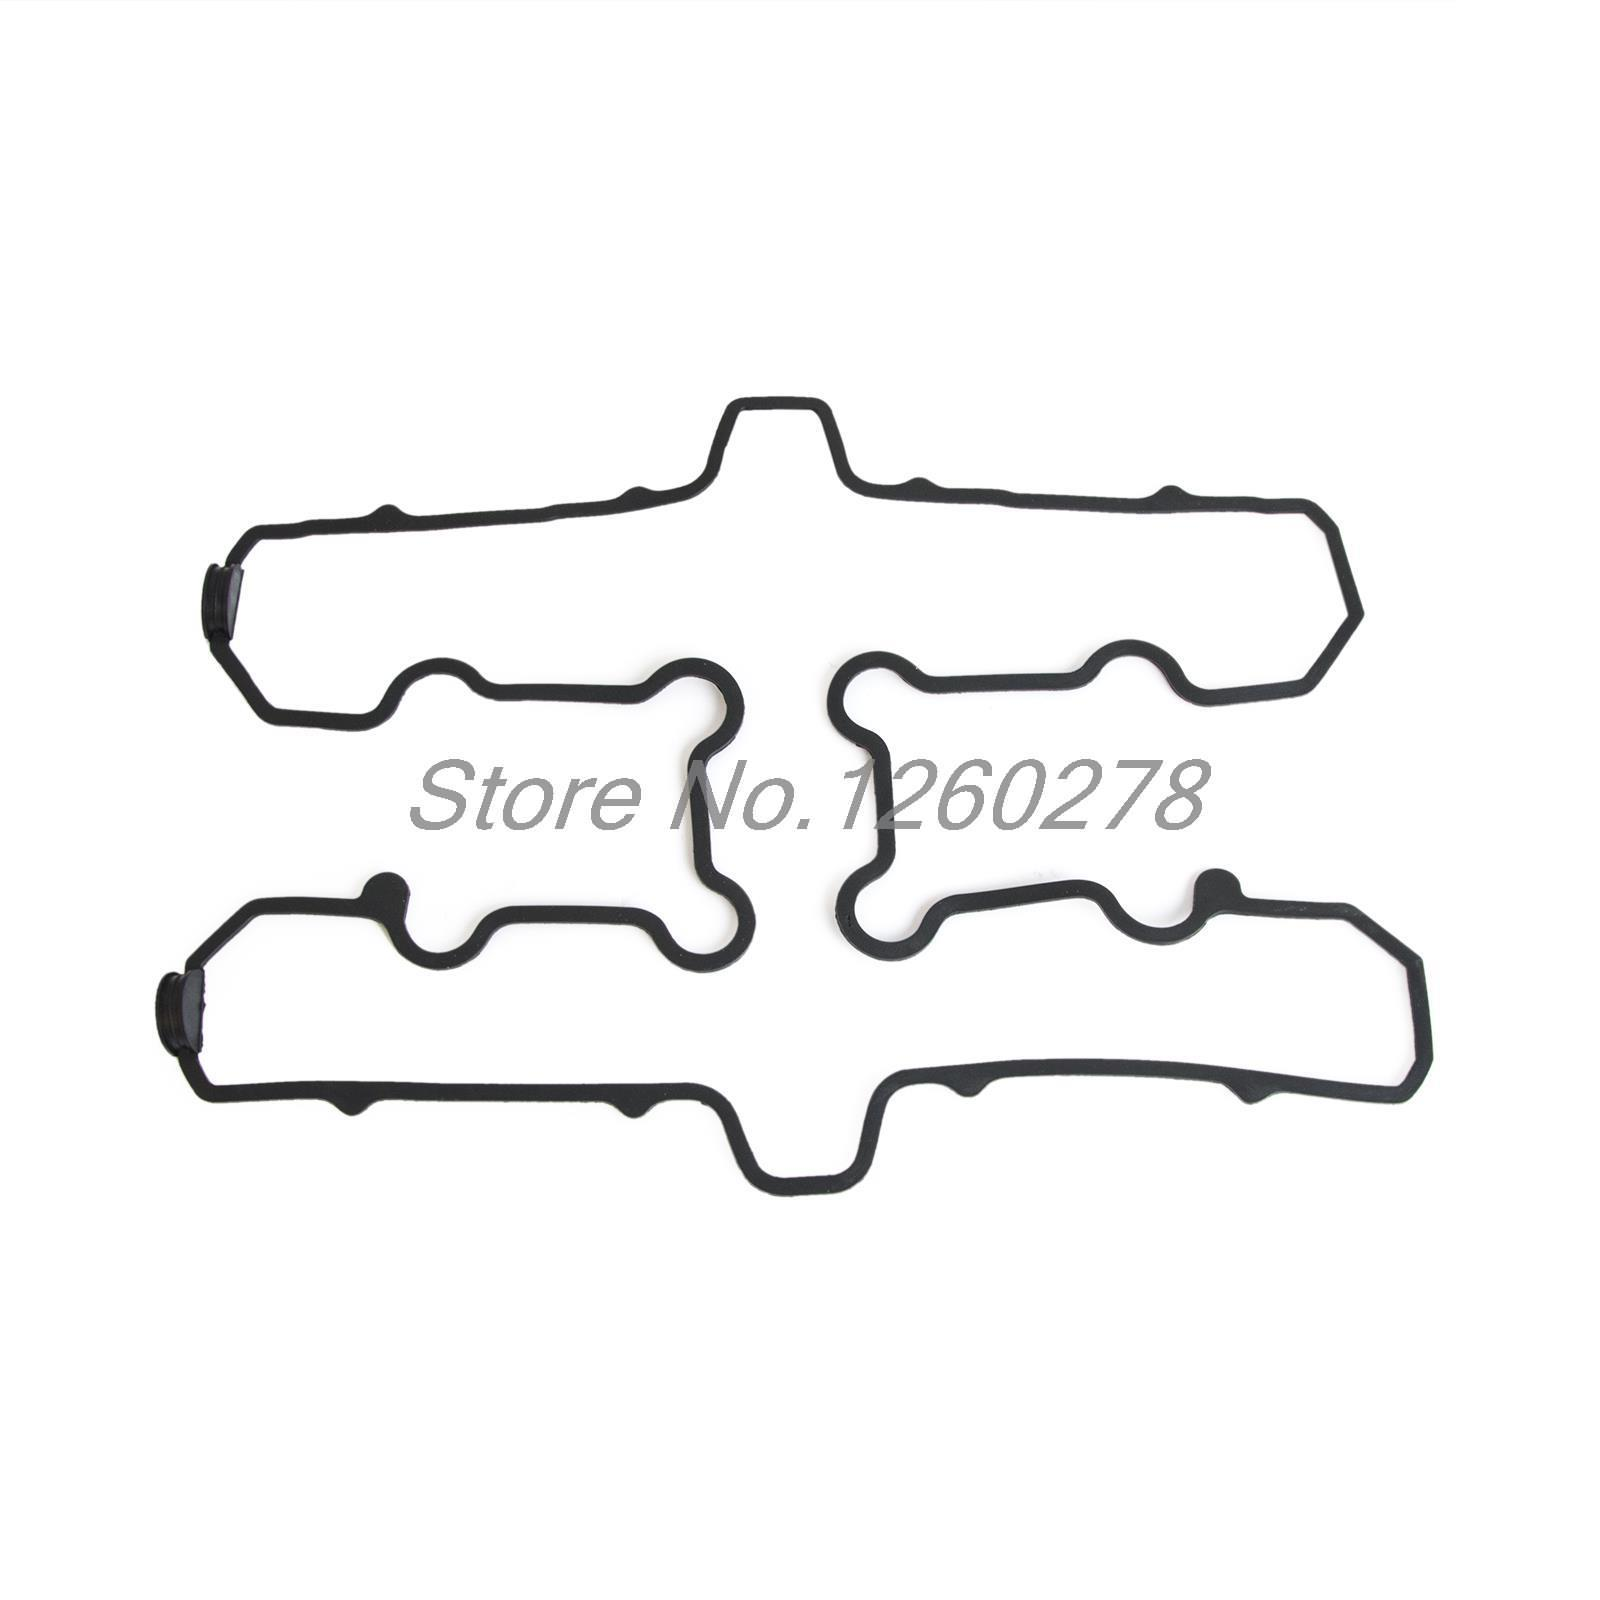 Motorcycle Parts Cylinder Head Cover Gasket for Yamaha